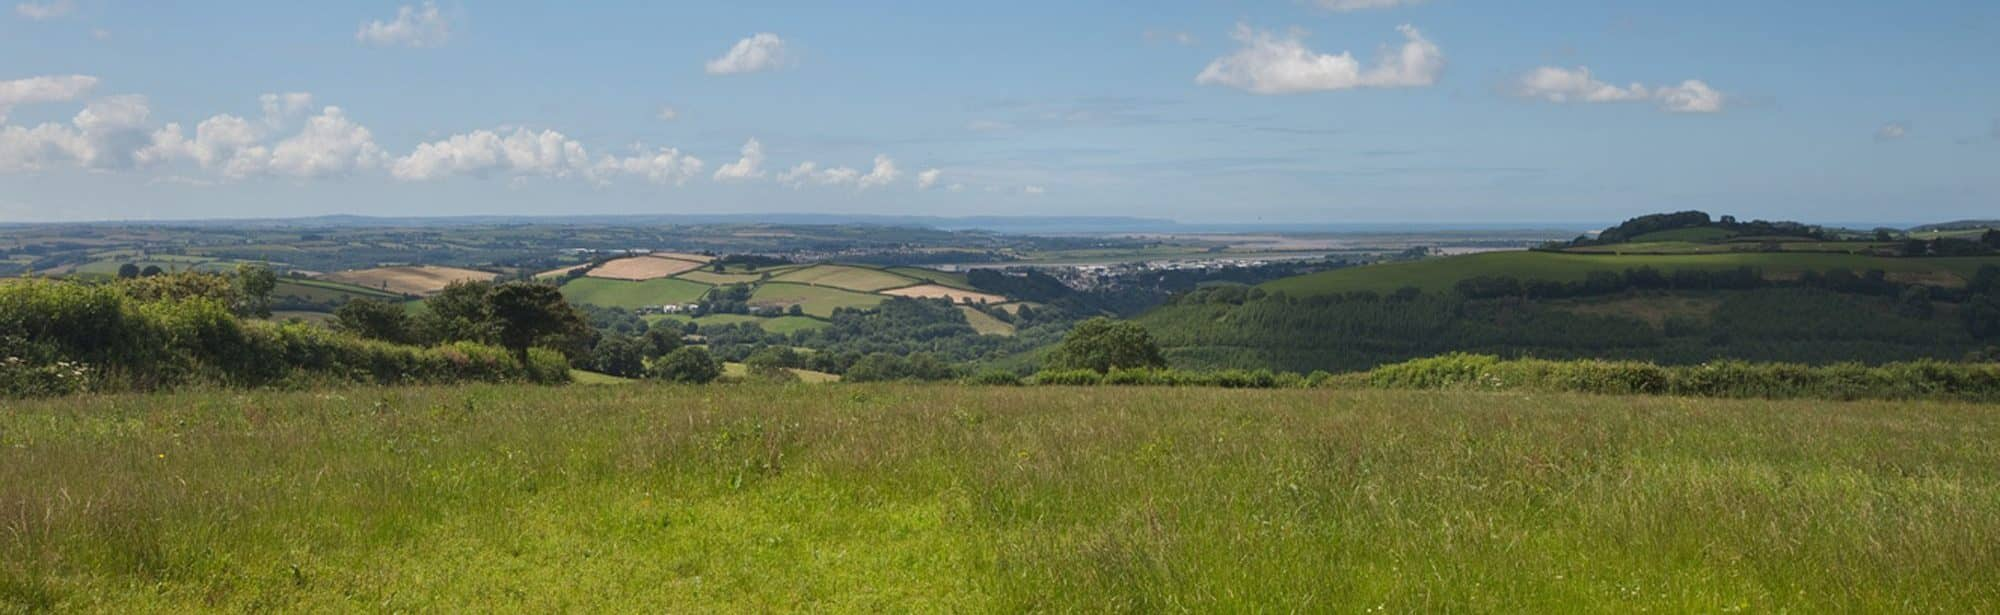 View from Bampfield Farm